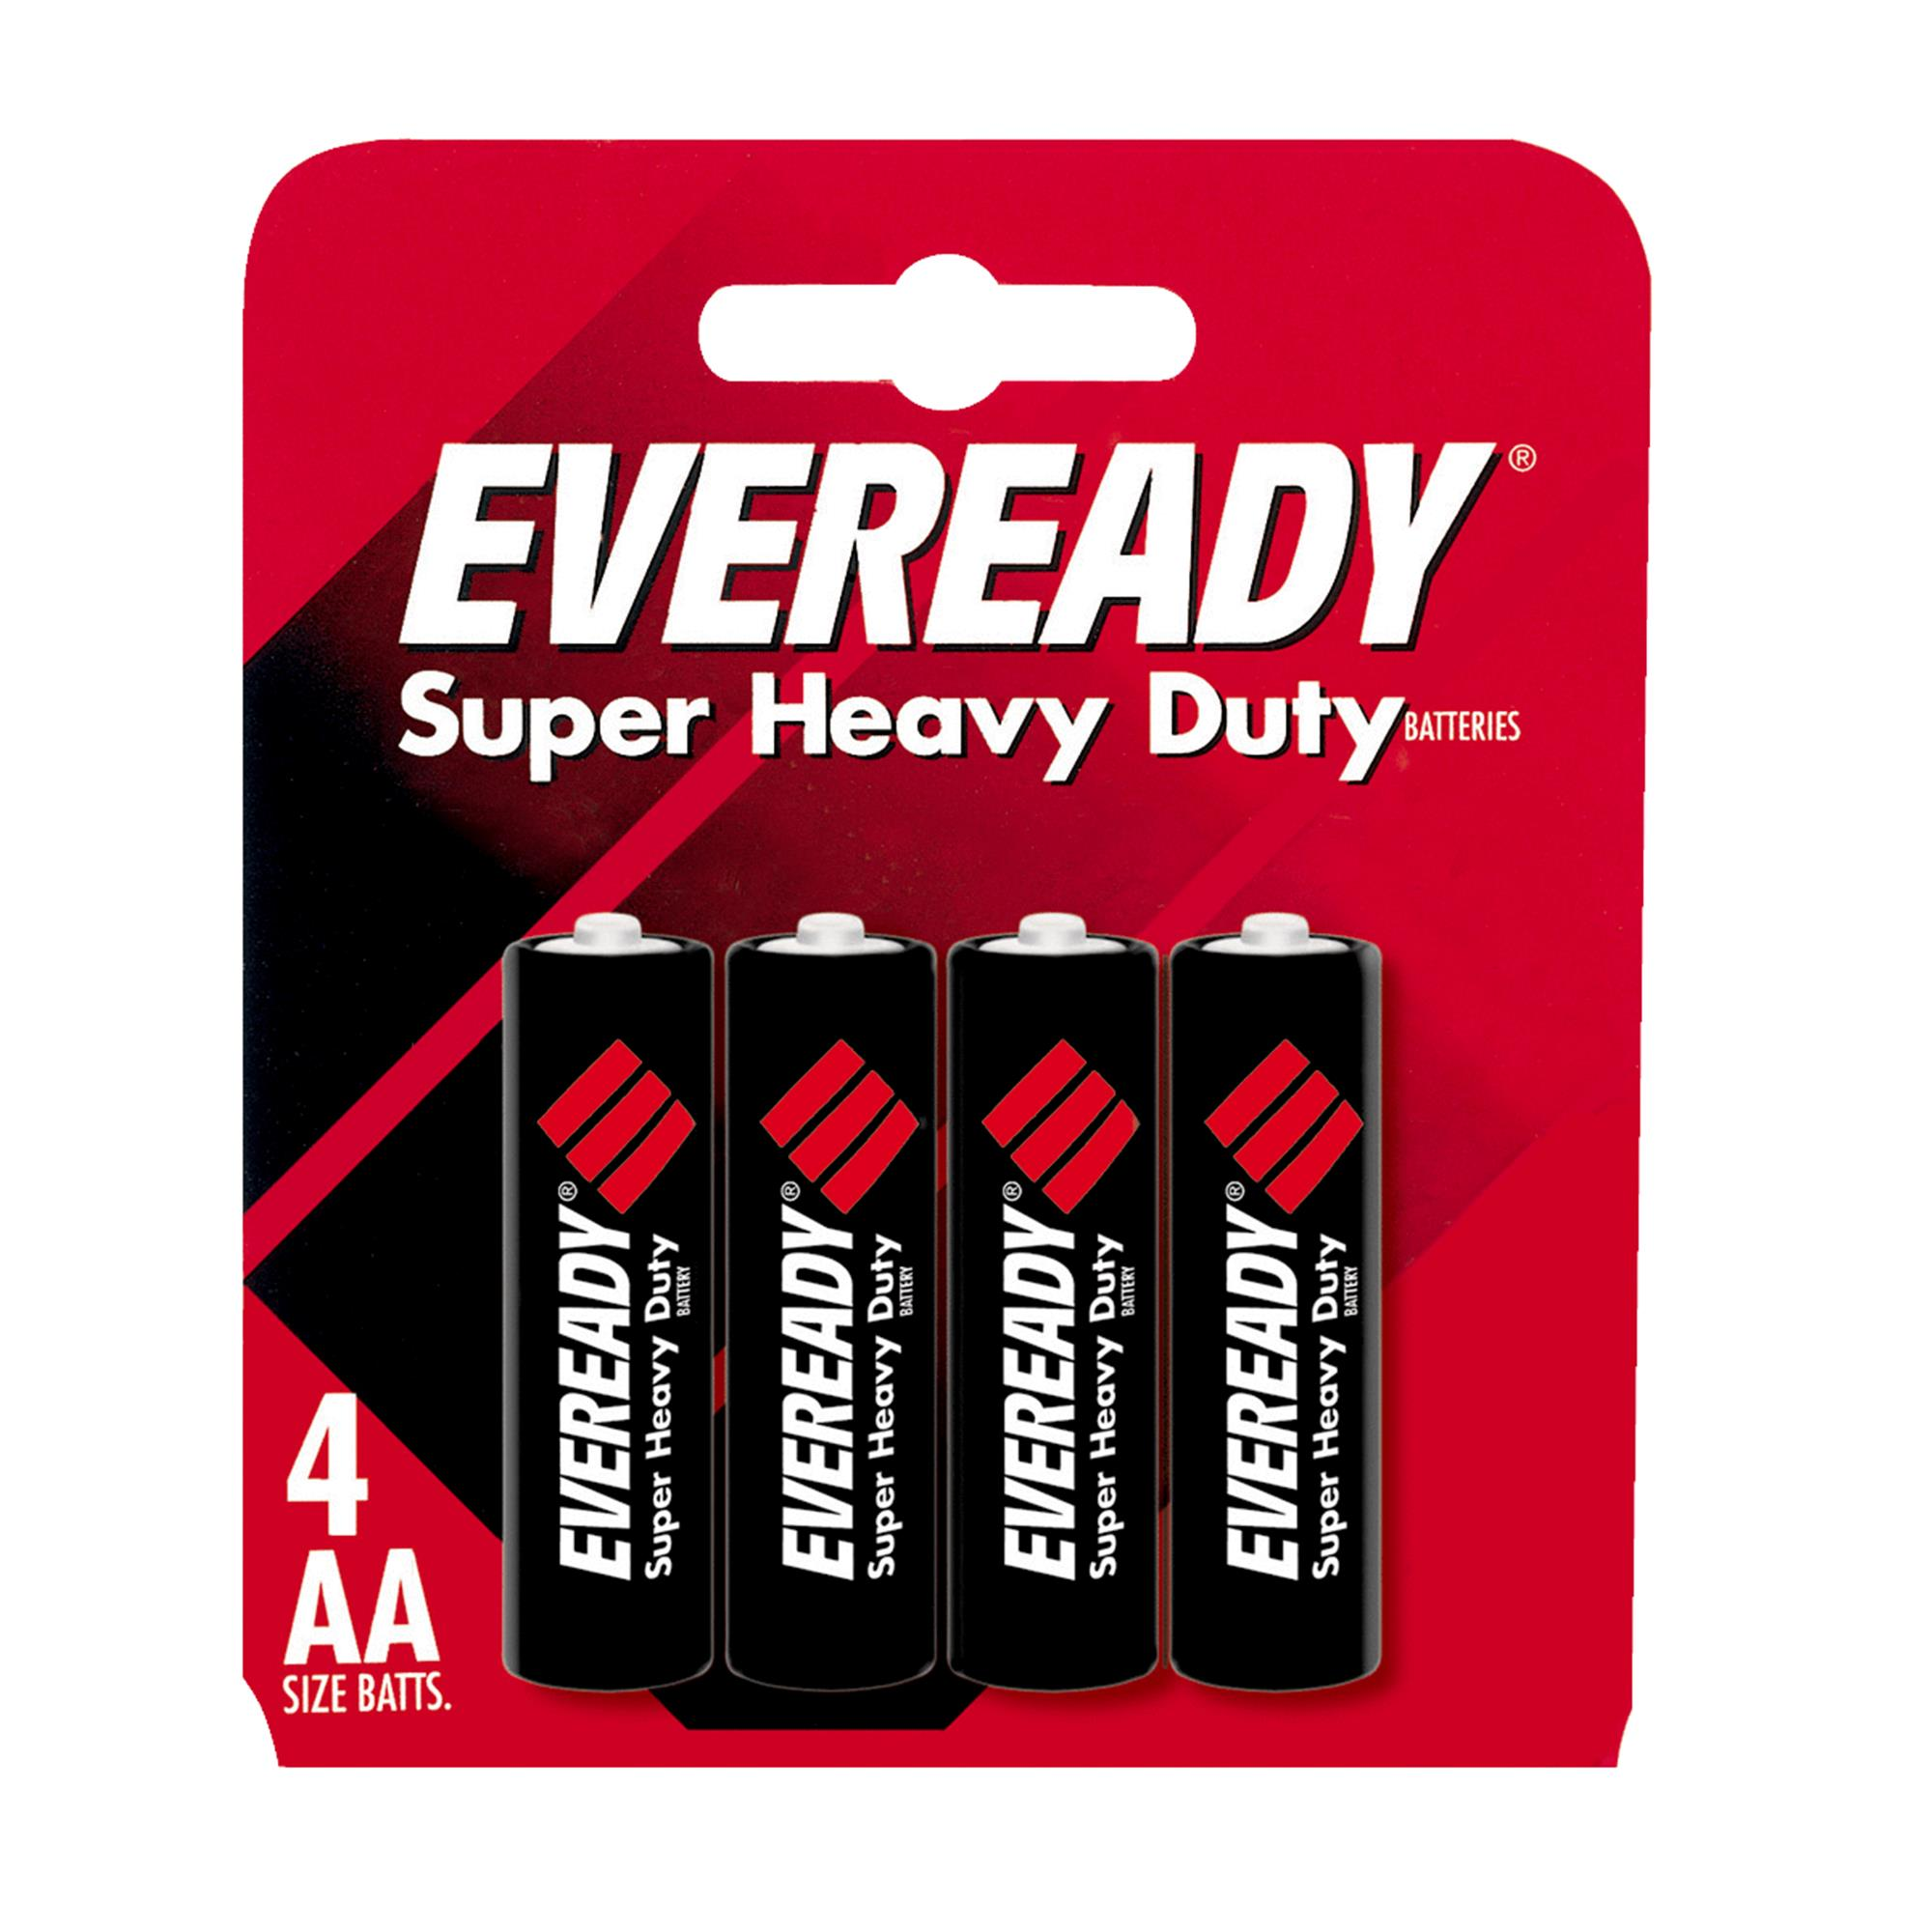 Eveready Super Heavy Duty AA Carbon Zinc Battery